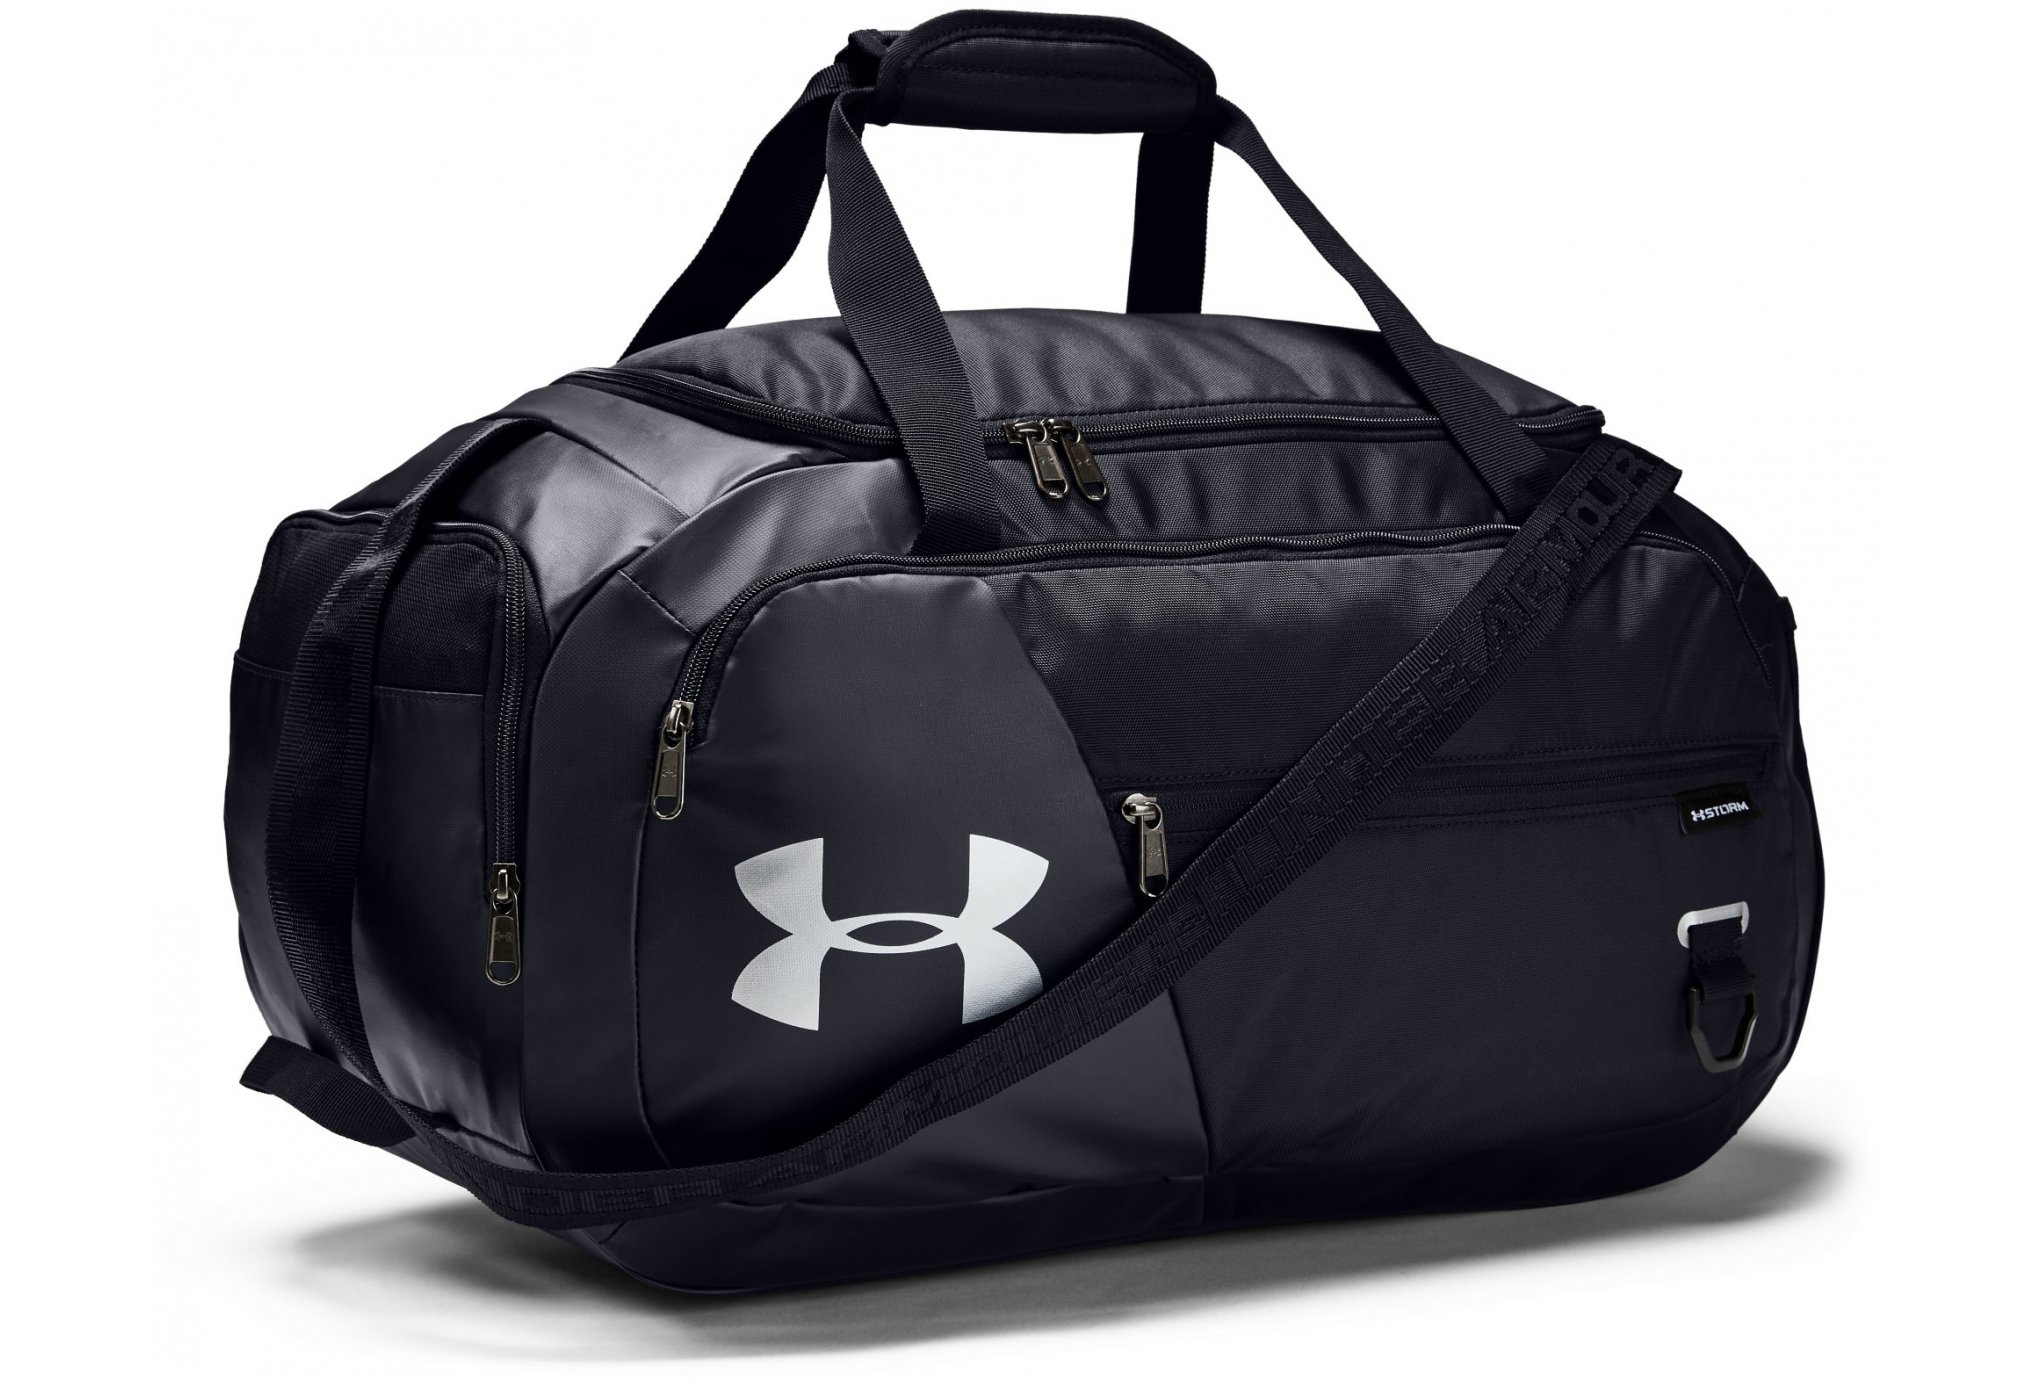 Under Armour Undeniable Duffle 4.0 - S Sac de sport